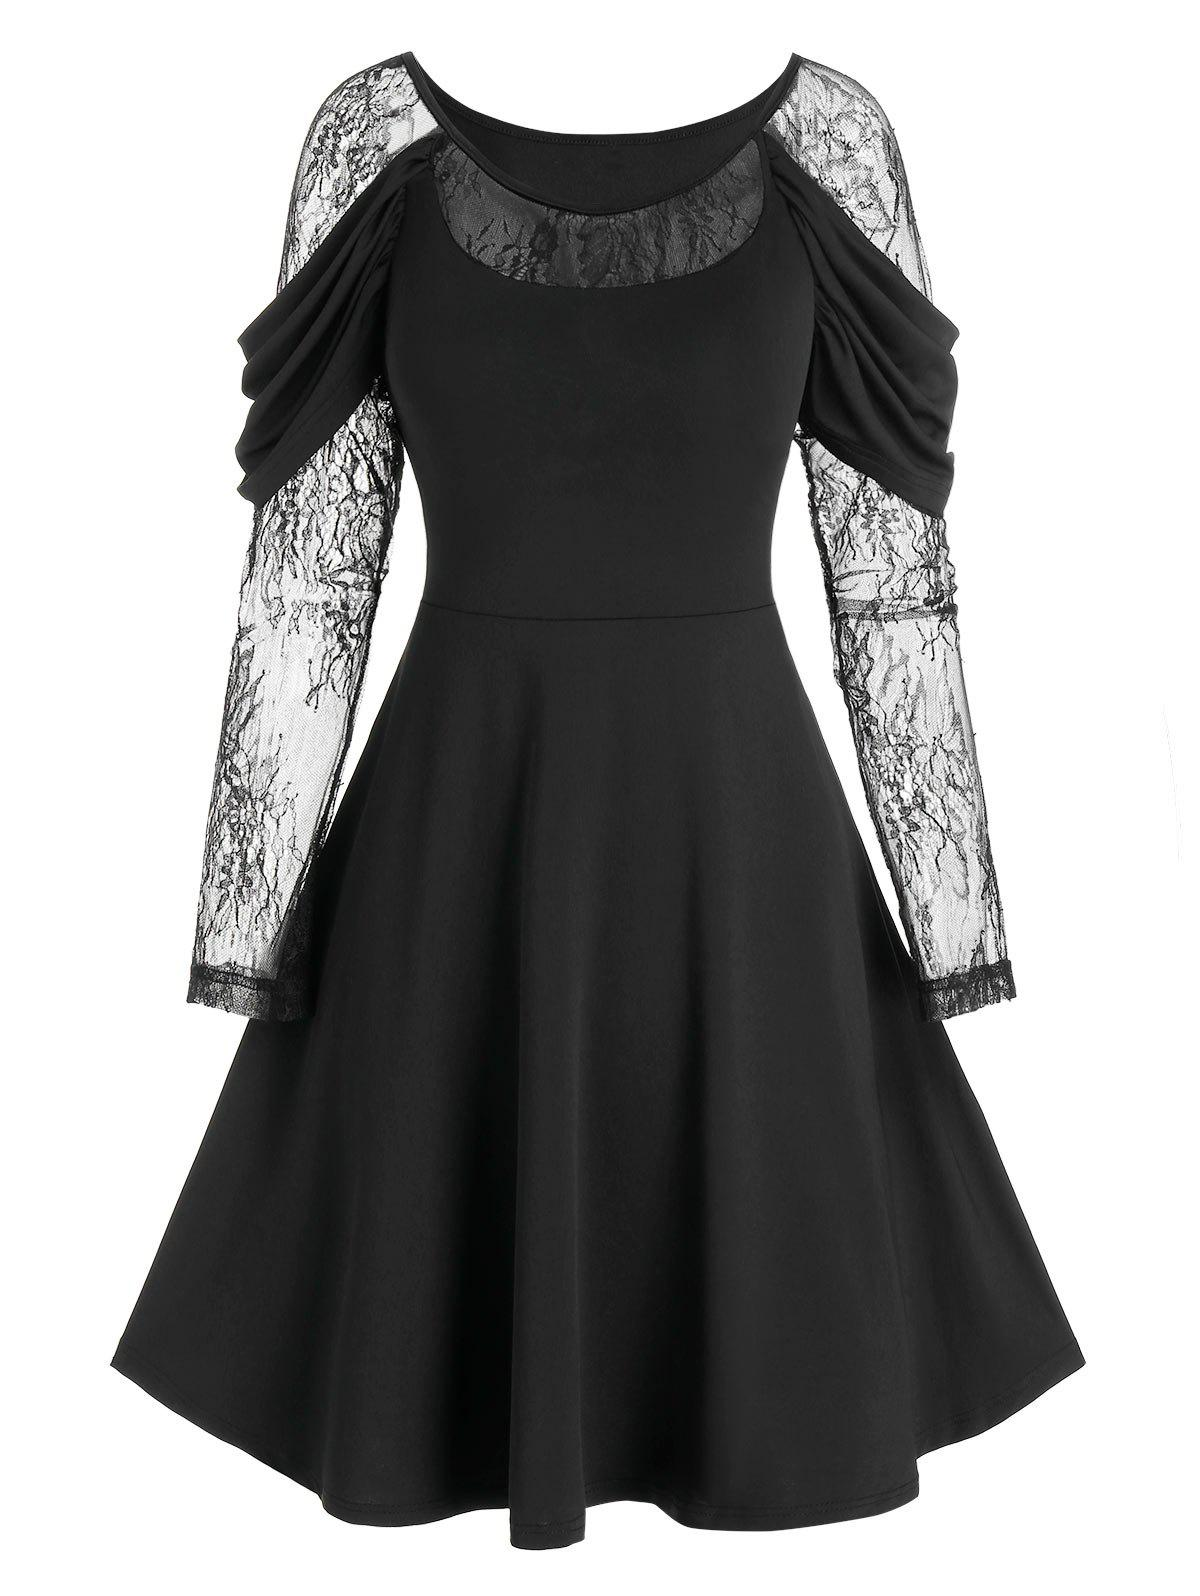 Lace Sleeve Draped Gothic Prom Dress - BLACK XL